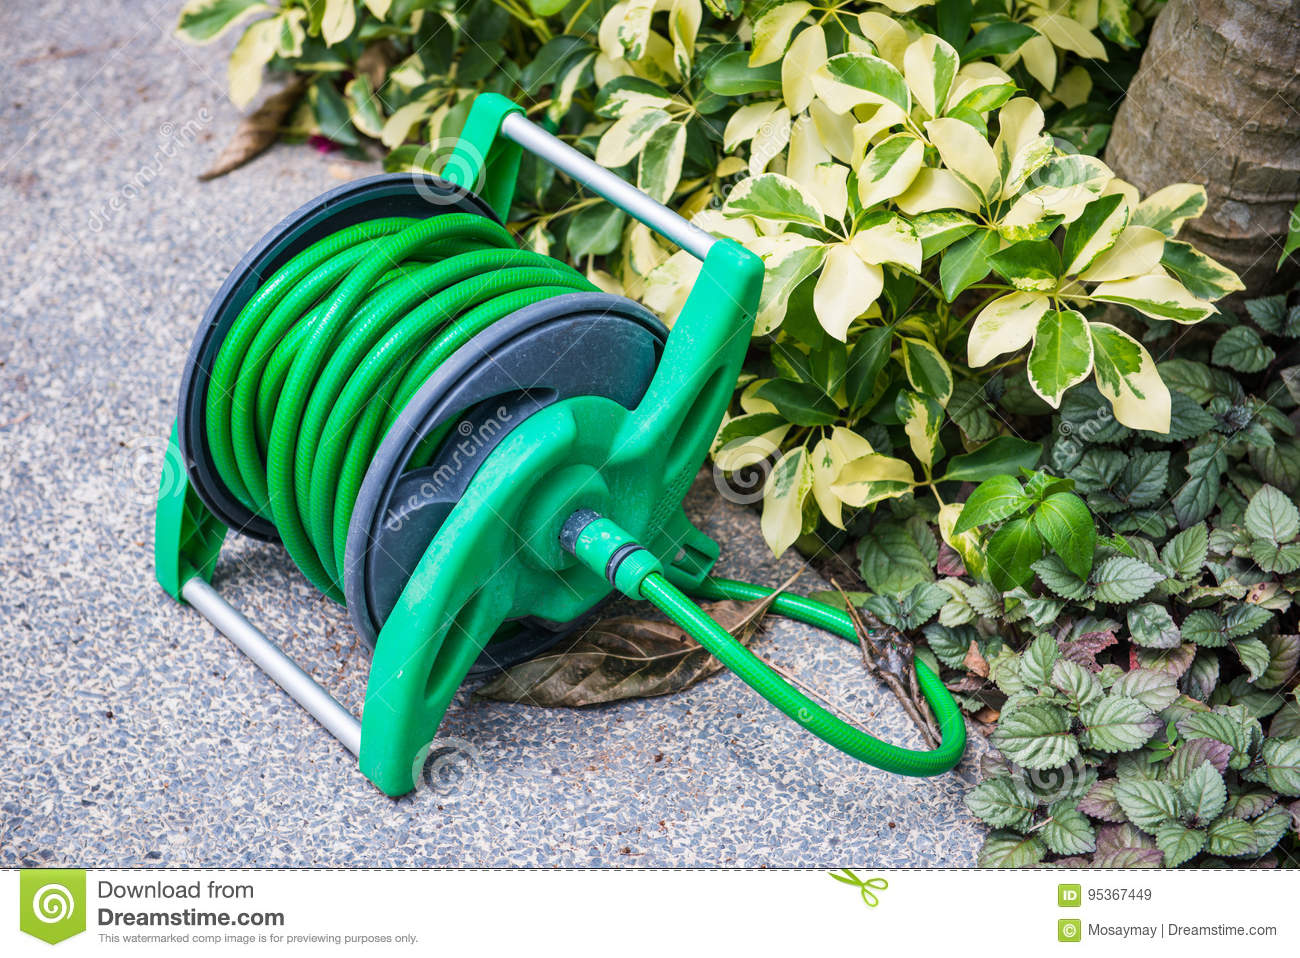 Roll the watering hose in the garden